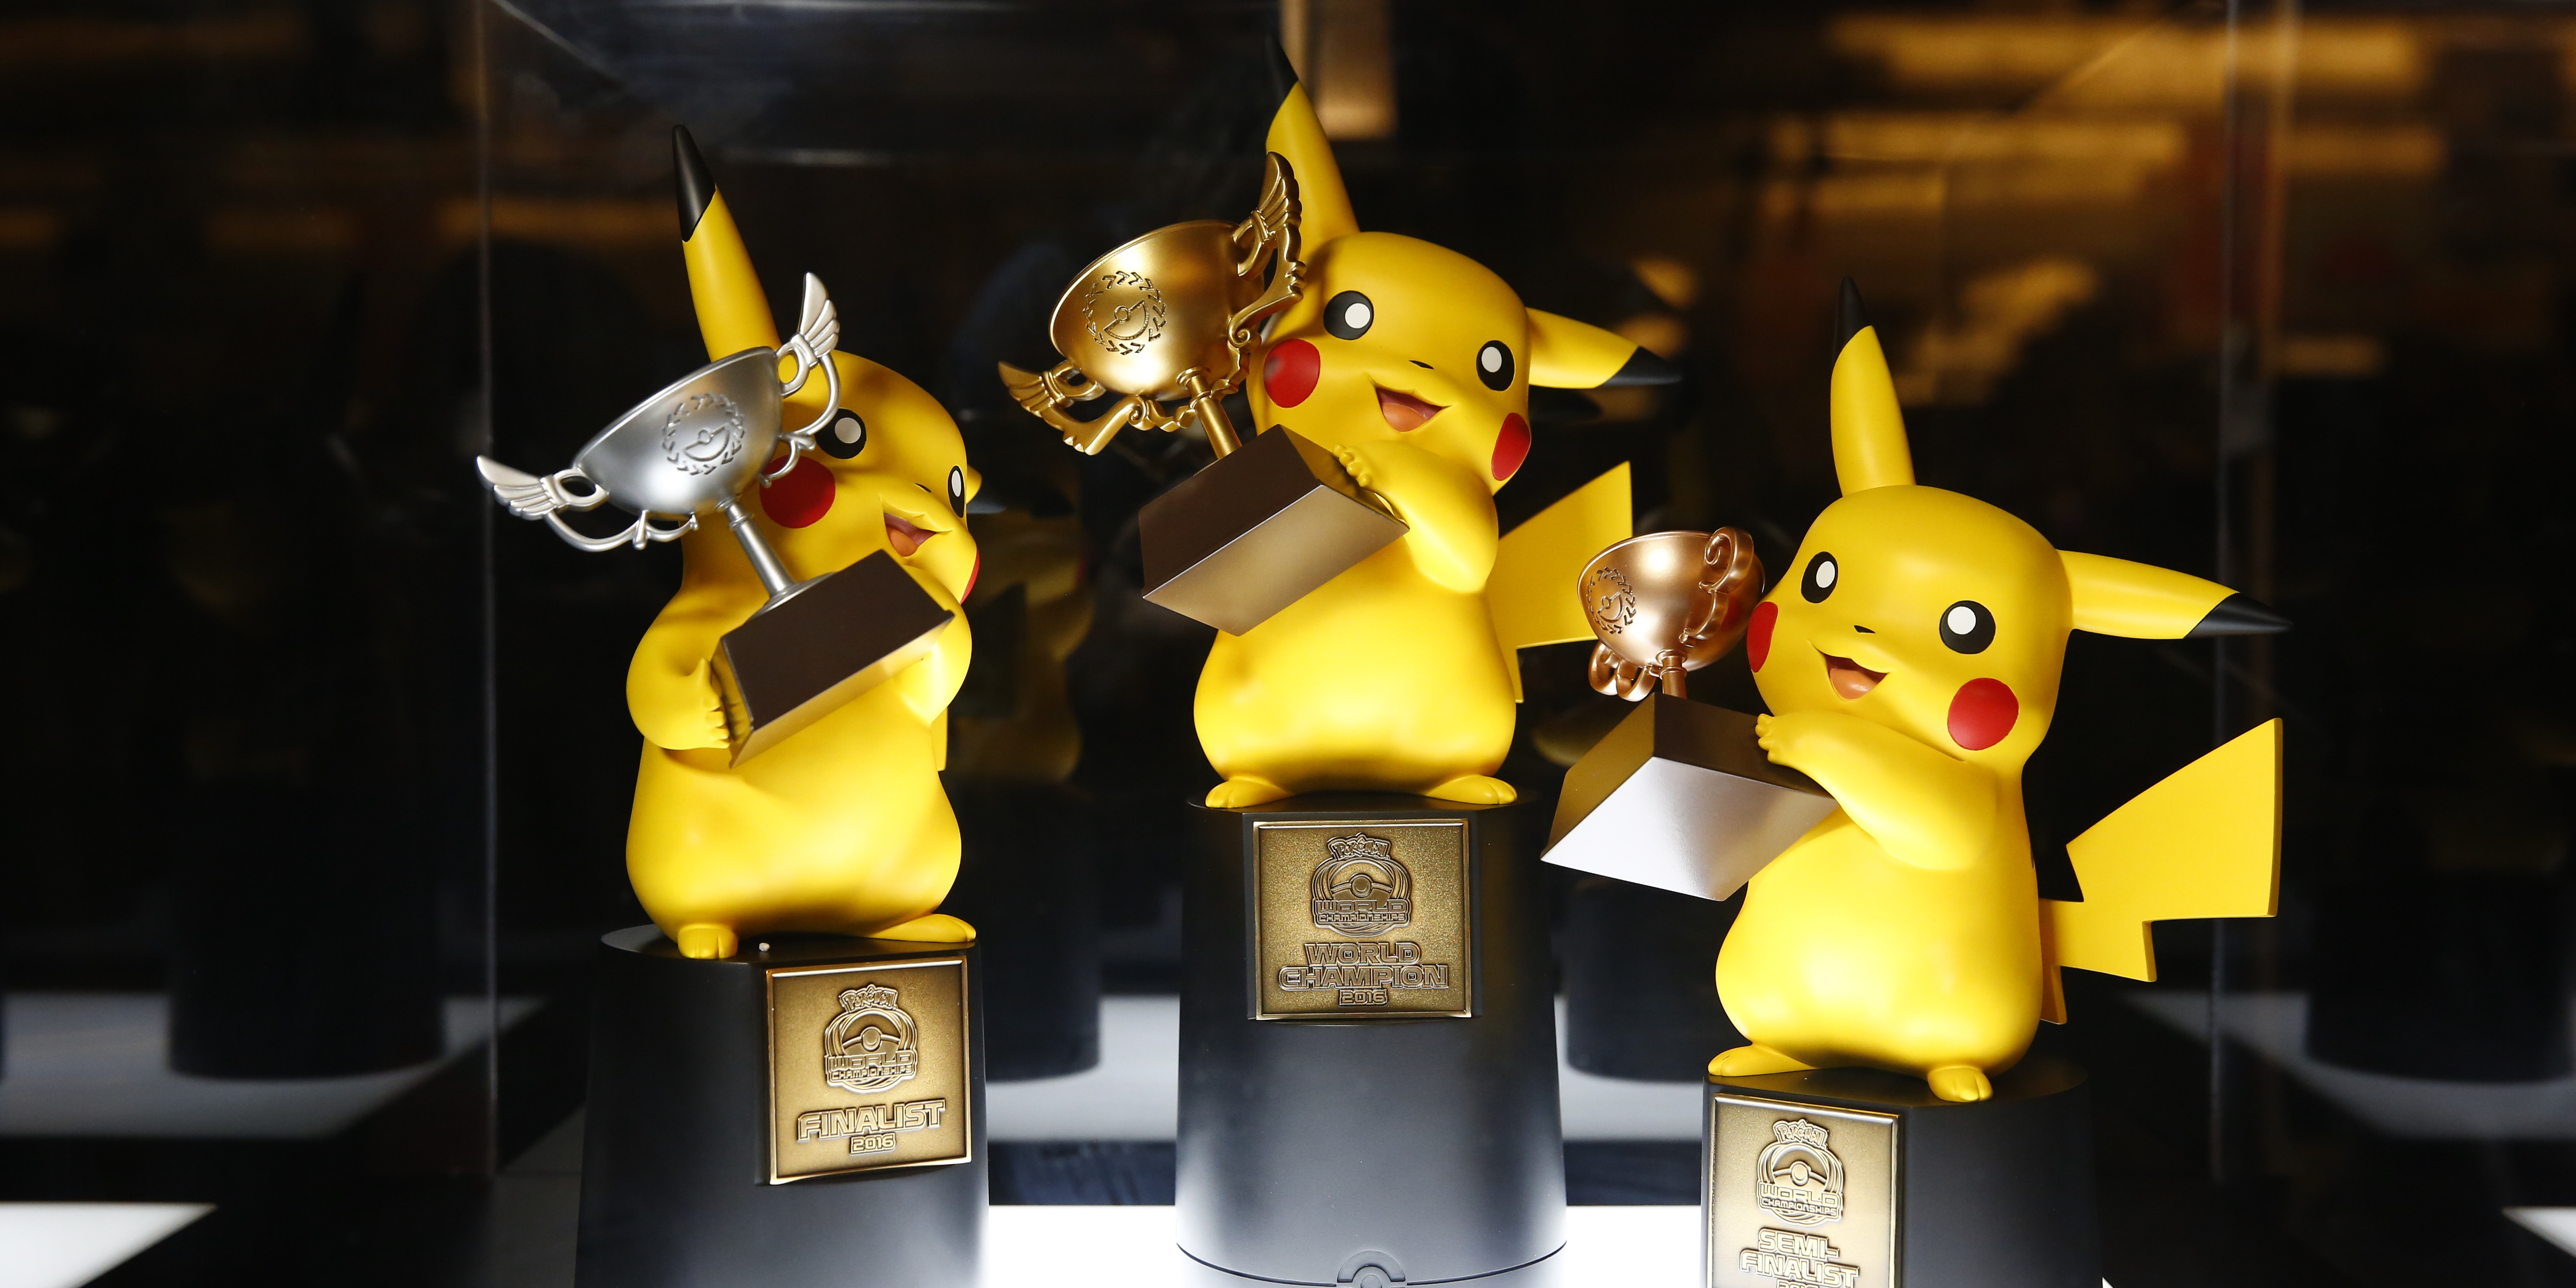 How to Play Competitive 'Pokemon' Like a Pro